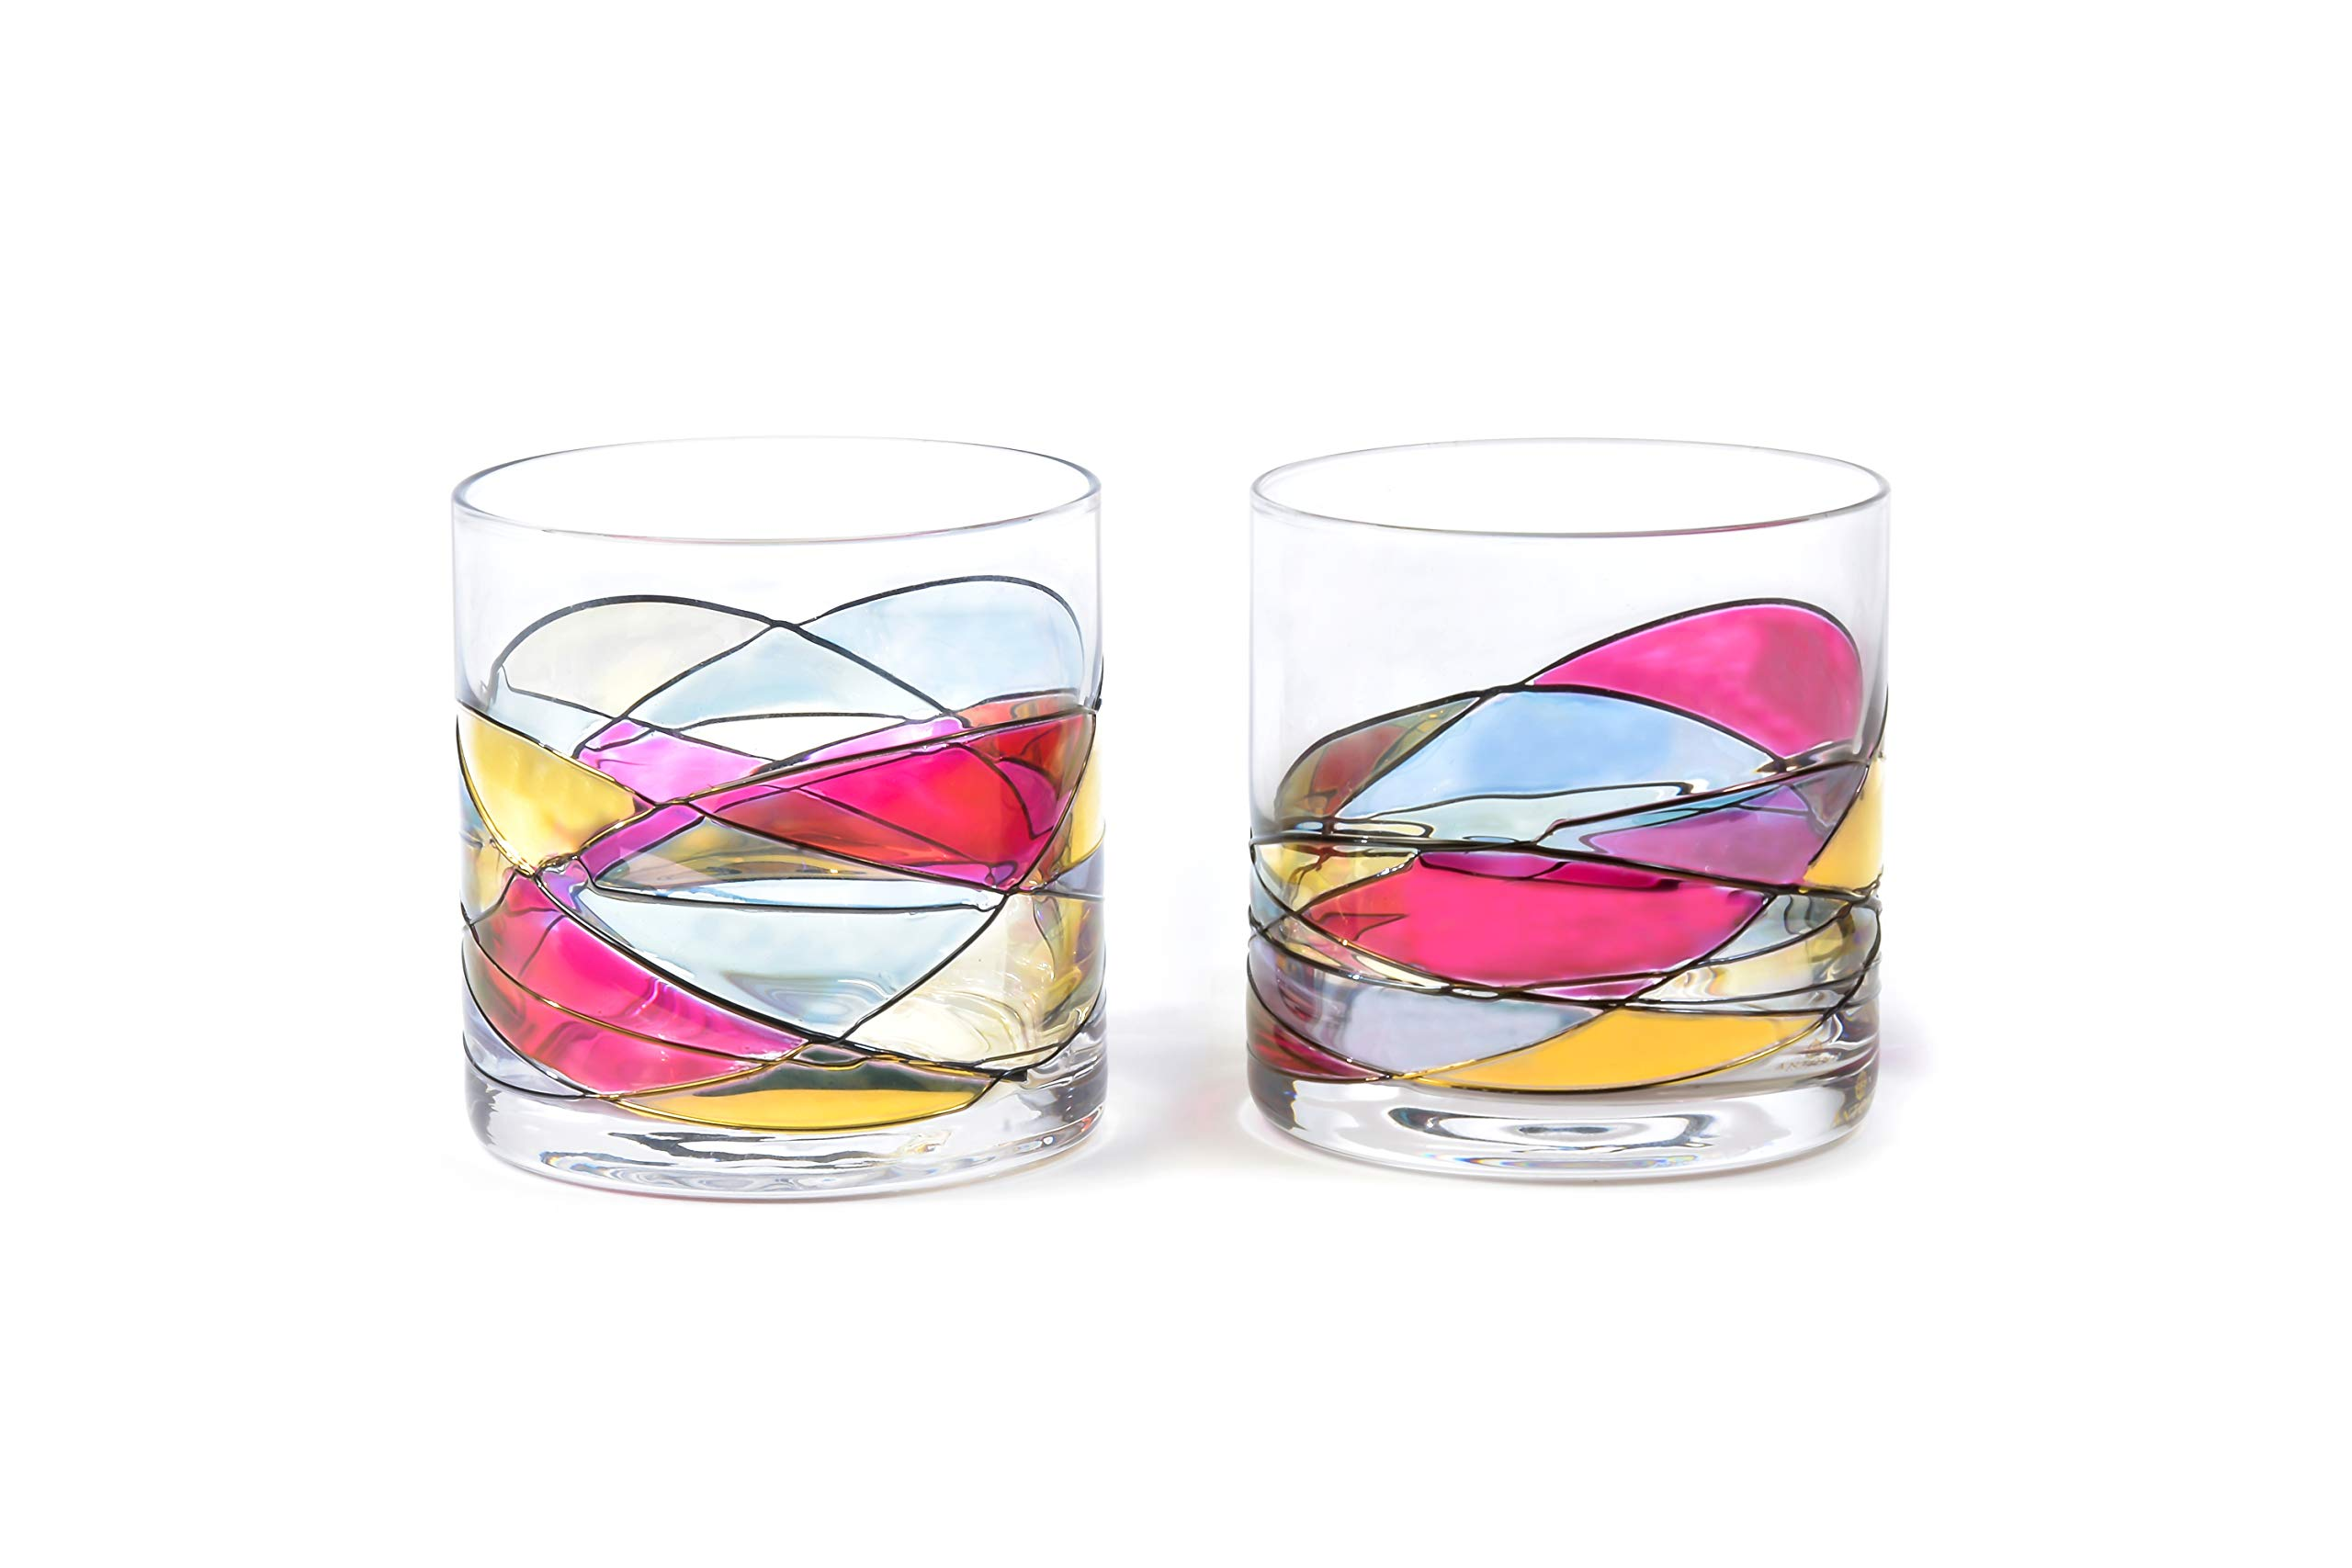 ANTONI BARCELONA Whiskey & Bourbon Glasses 12Oz SET 2 Sagrada Red Line Hand Painted - Mouth Blown Unique gifts & presents dad birthday spiritual moments stunning and gorgeous colorful on the rocks